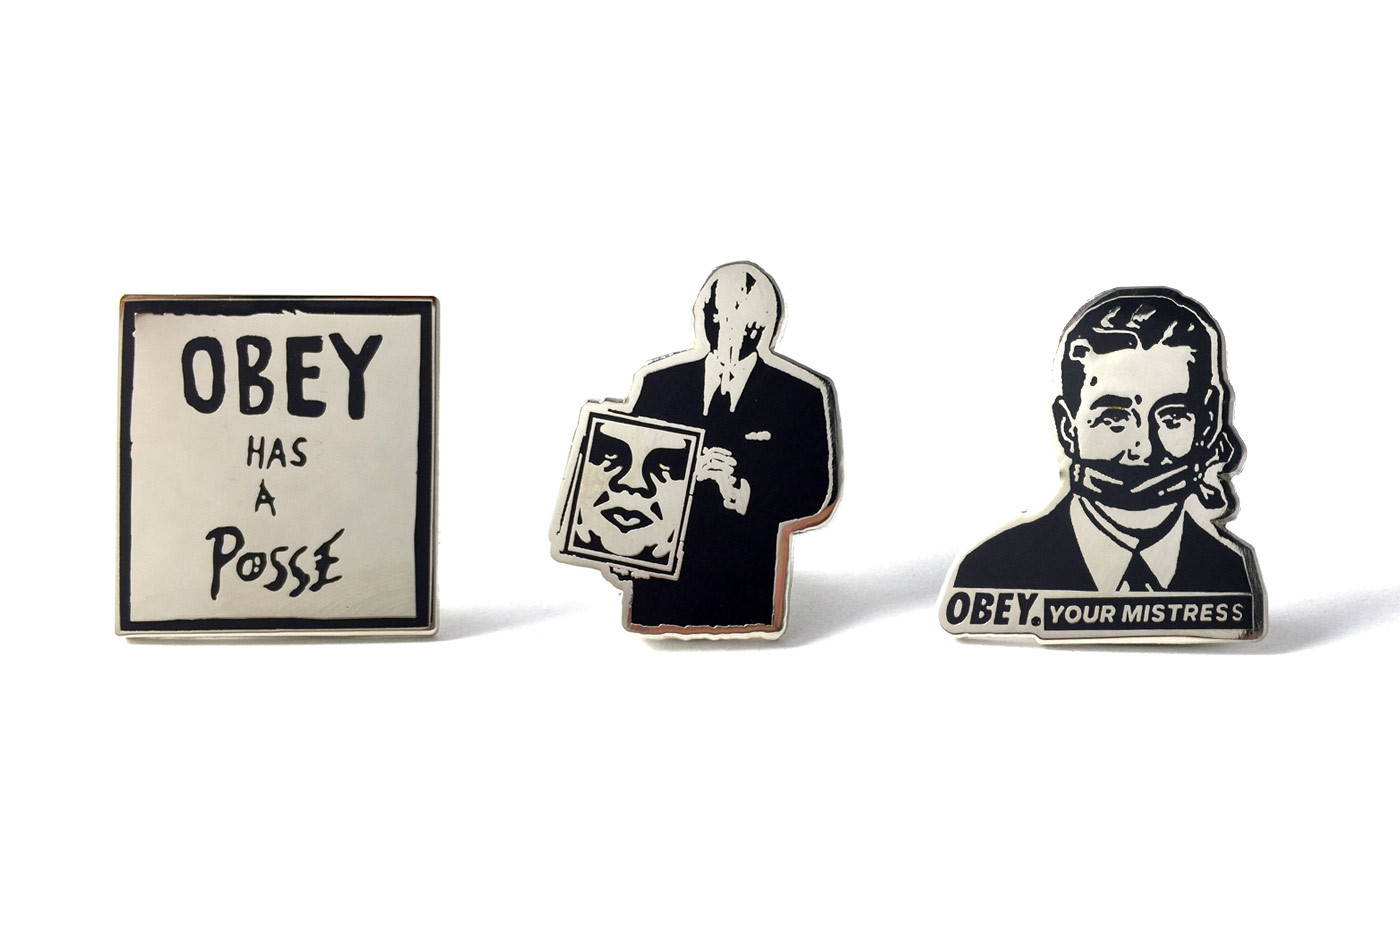 http://www.pintrill.com/collections/specials/products/obey-pin-pack?variant=12439398212